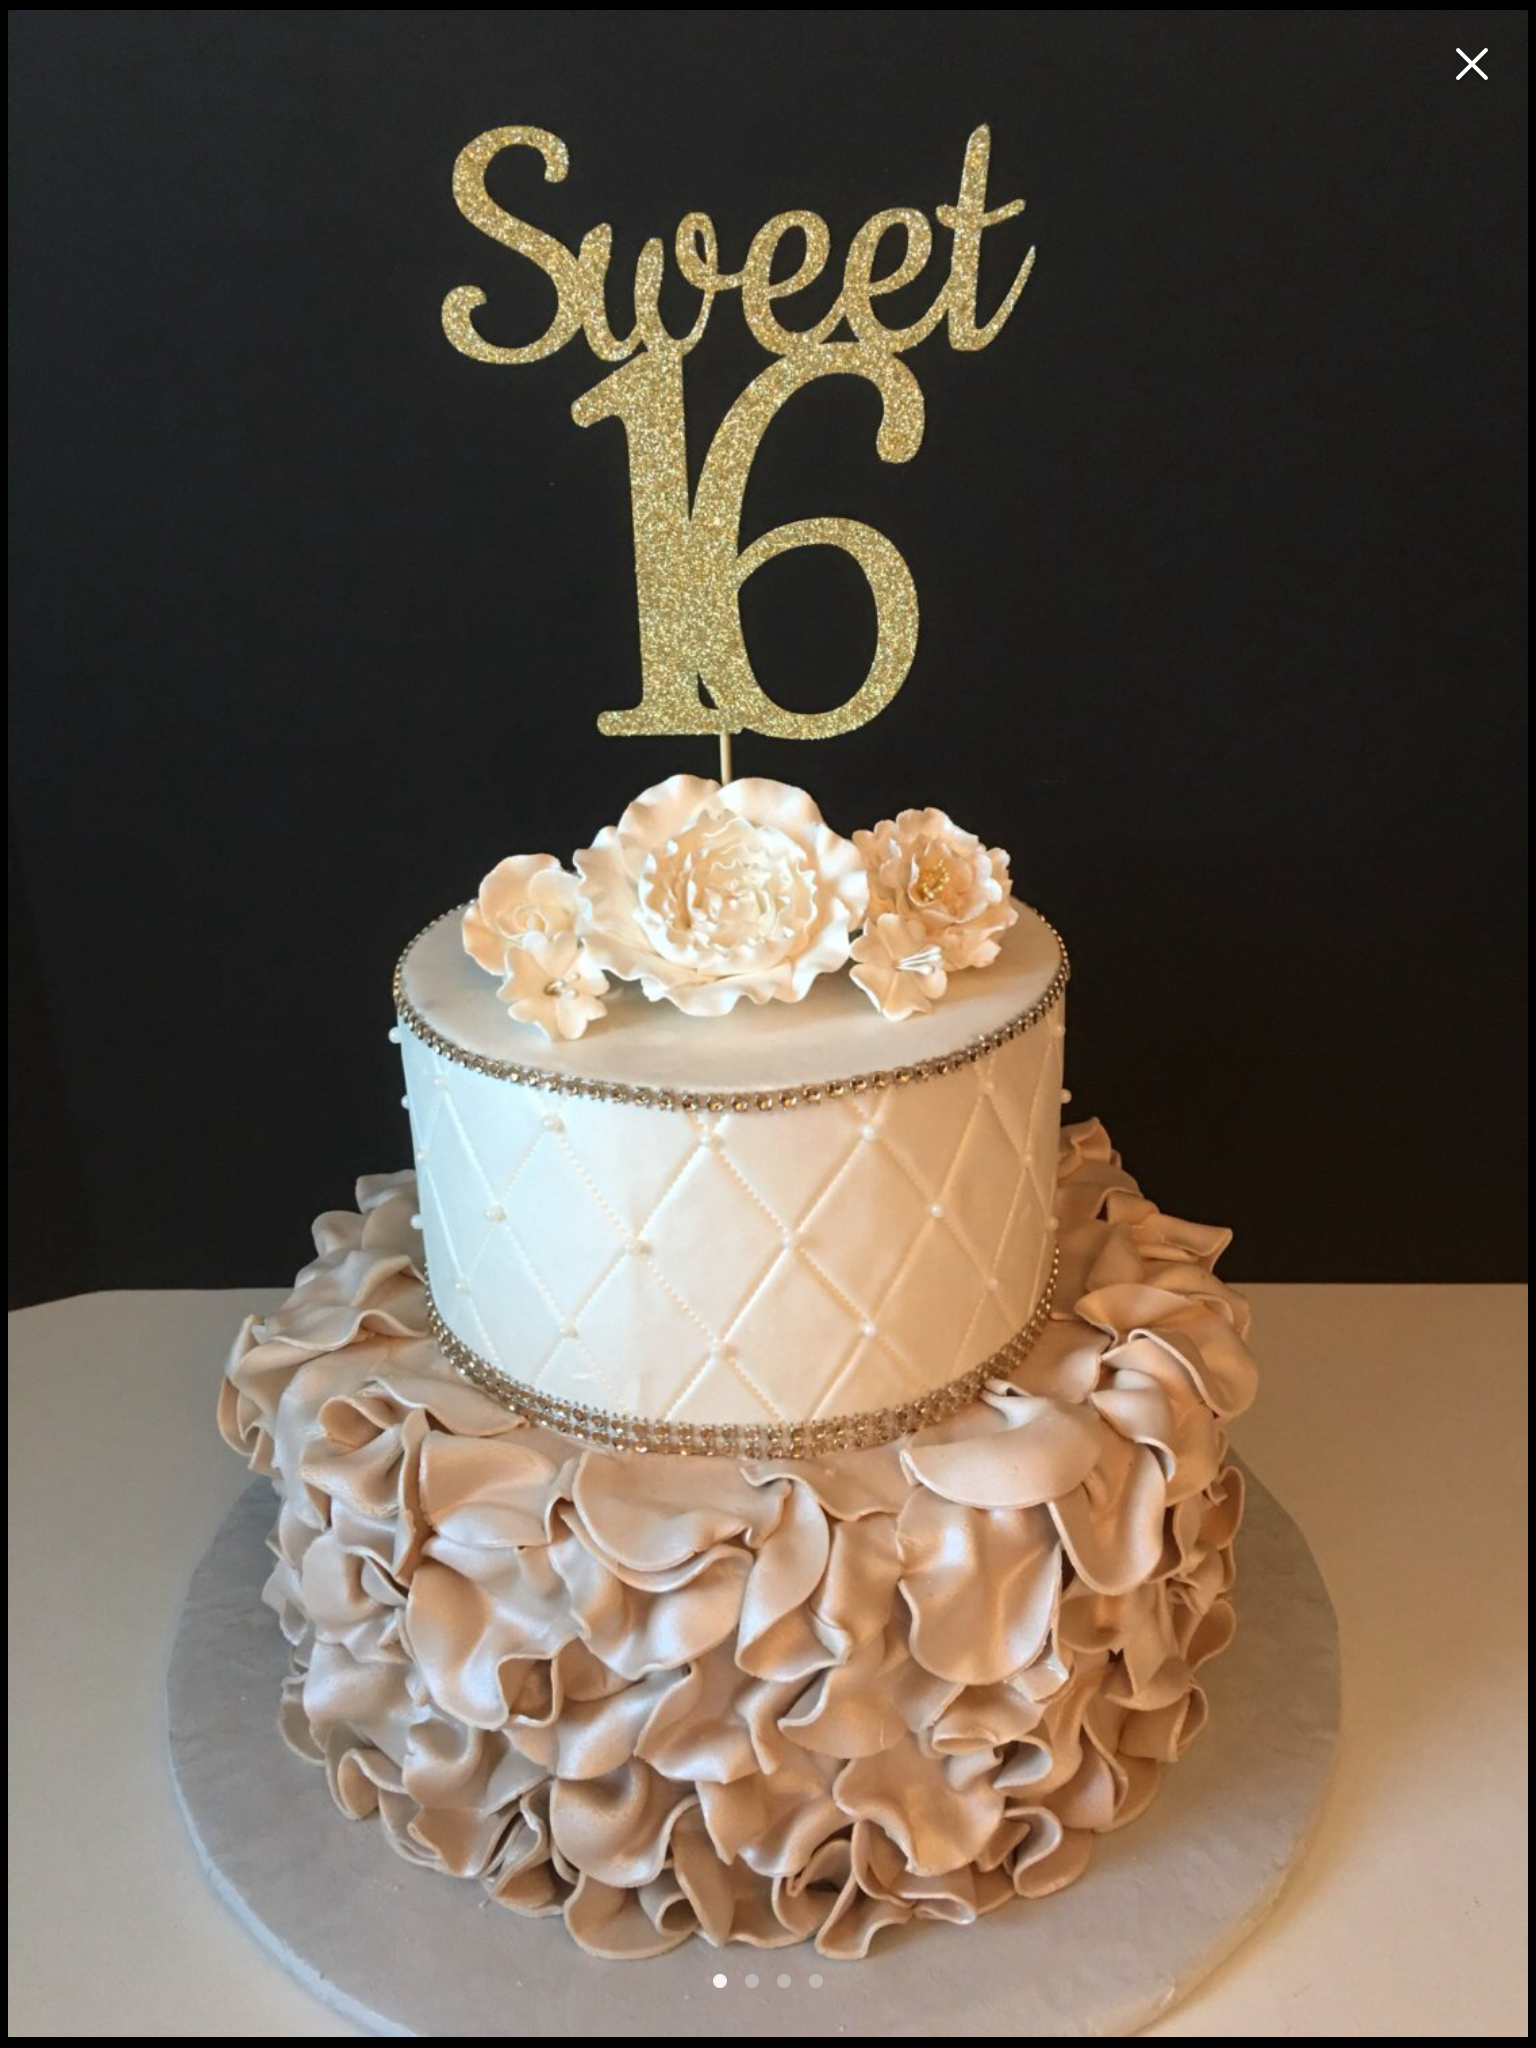 Pin by Danielle Weis on Fall Sweet 16 in 2019 | Birthday cake ...